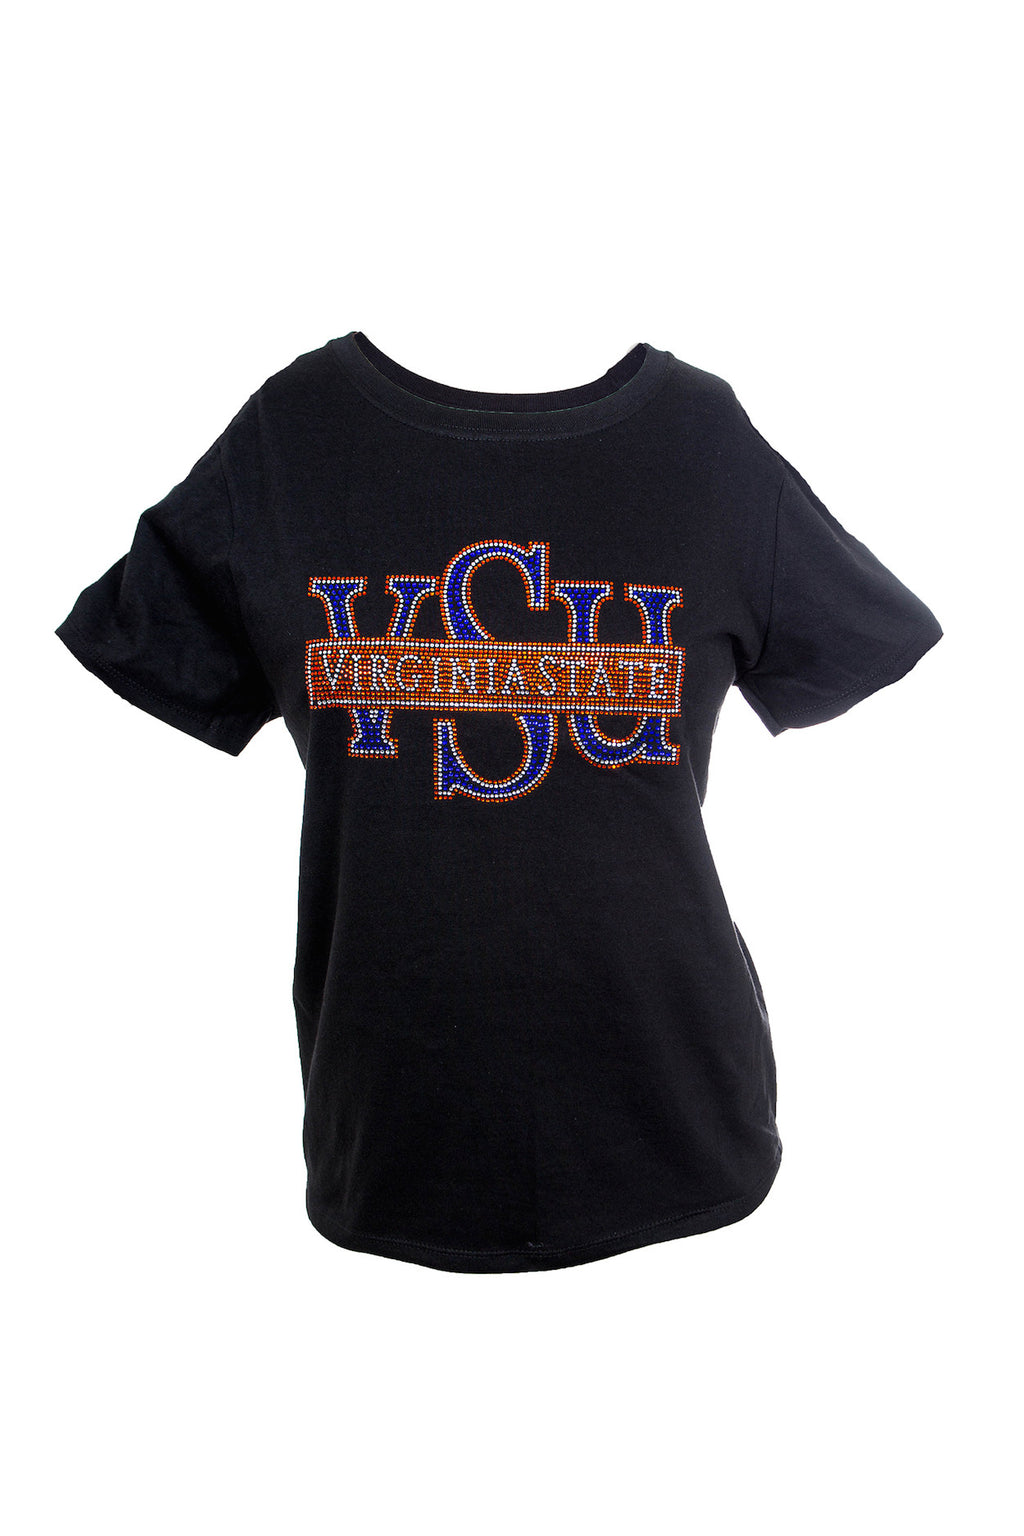 Virginia State University Bling AKA Shirt